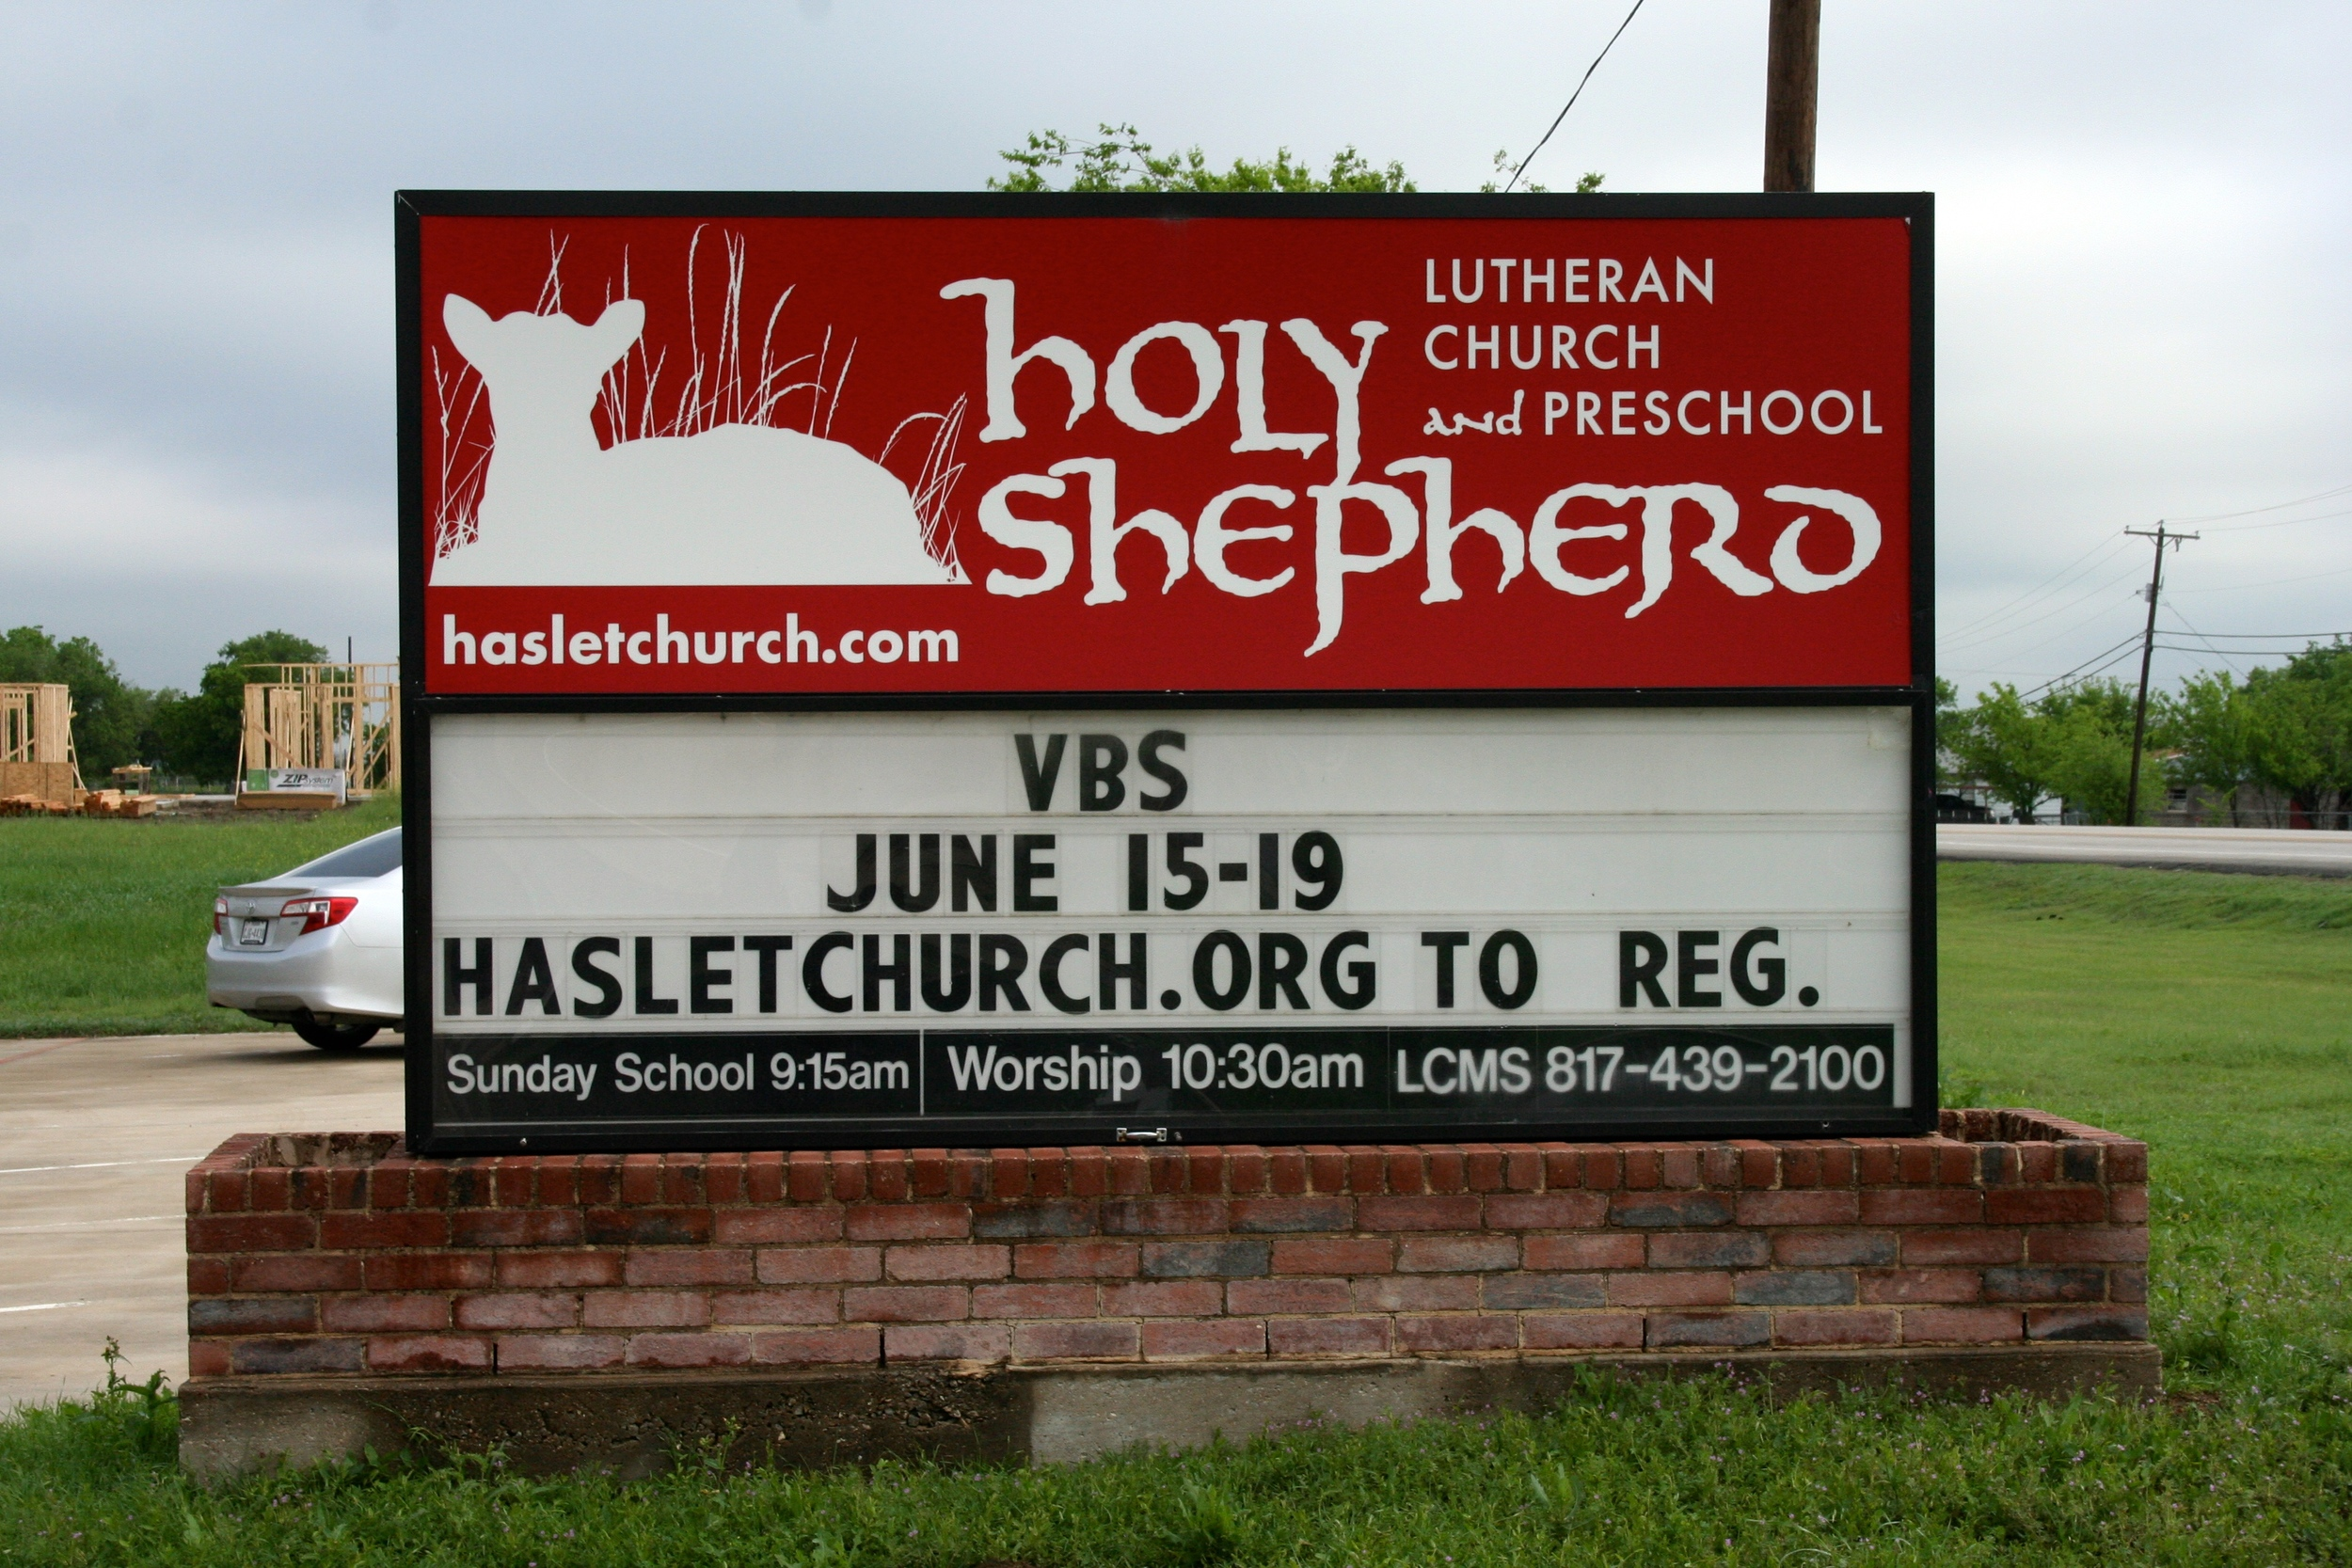 Don't miss VBS if you're in or near Haslet, Texas